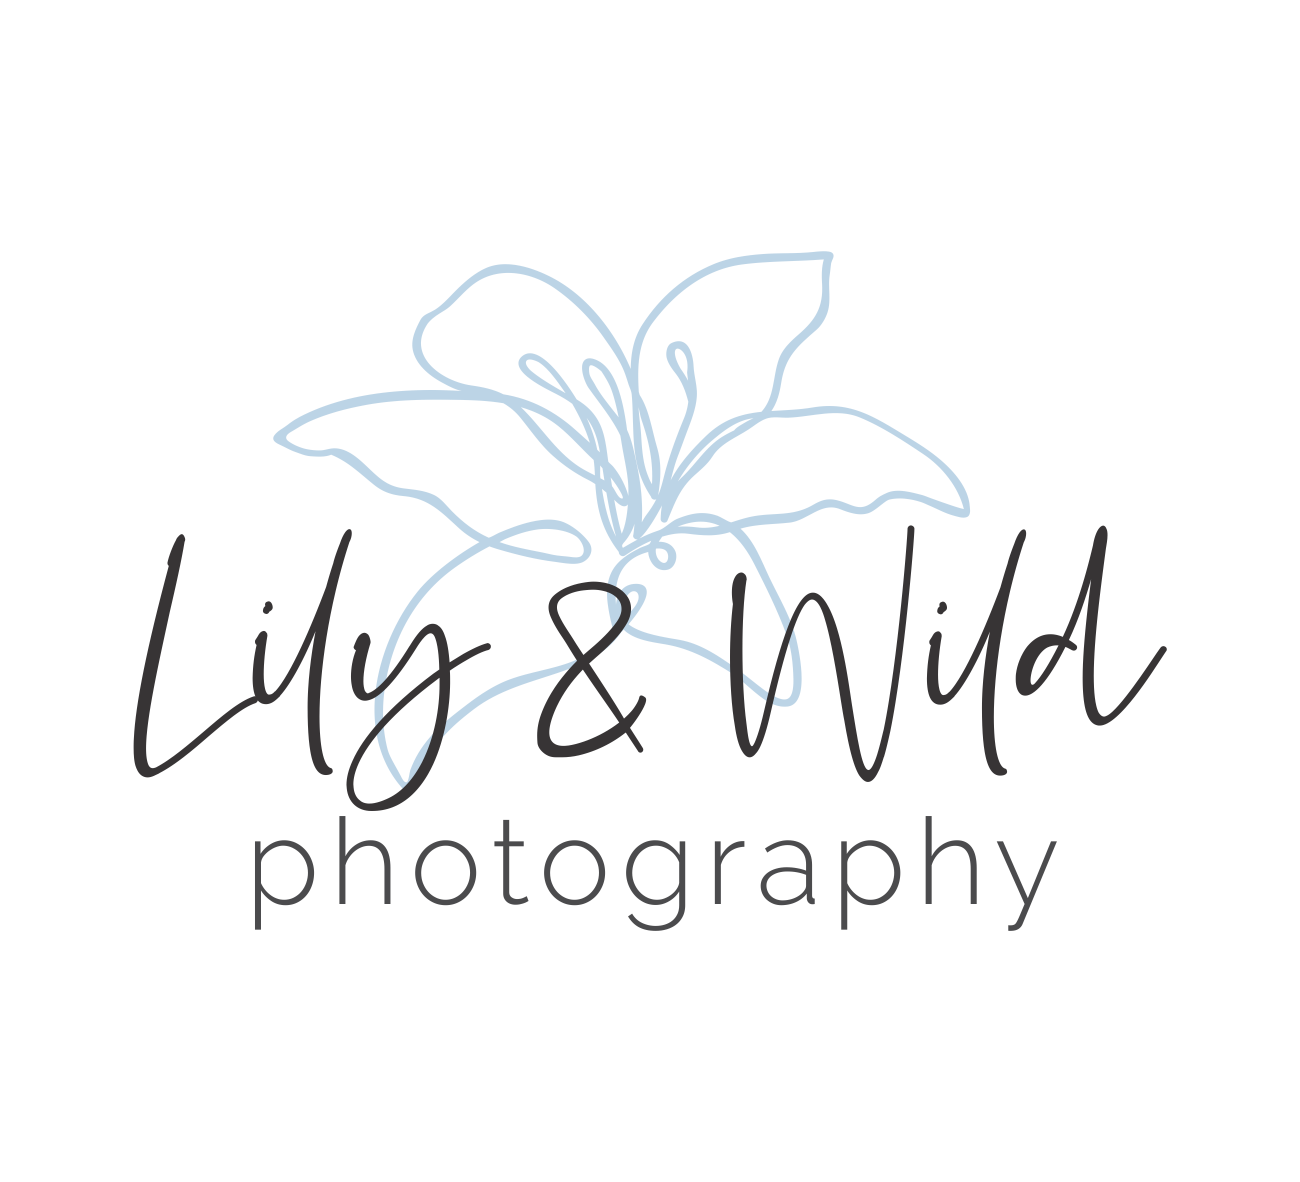 Lily & Wild Photography